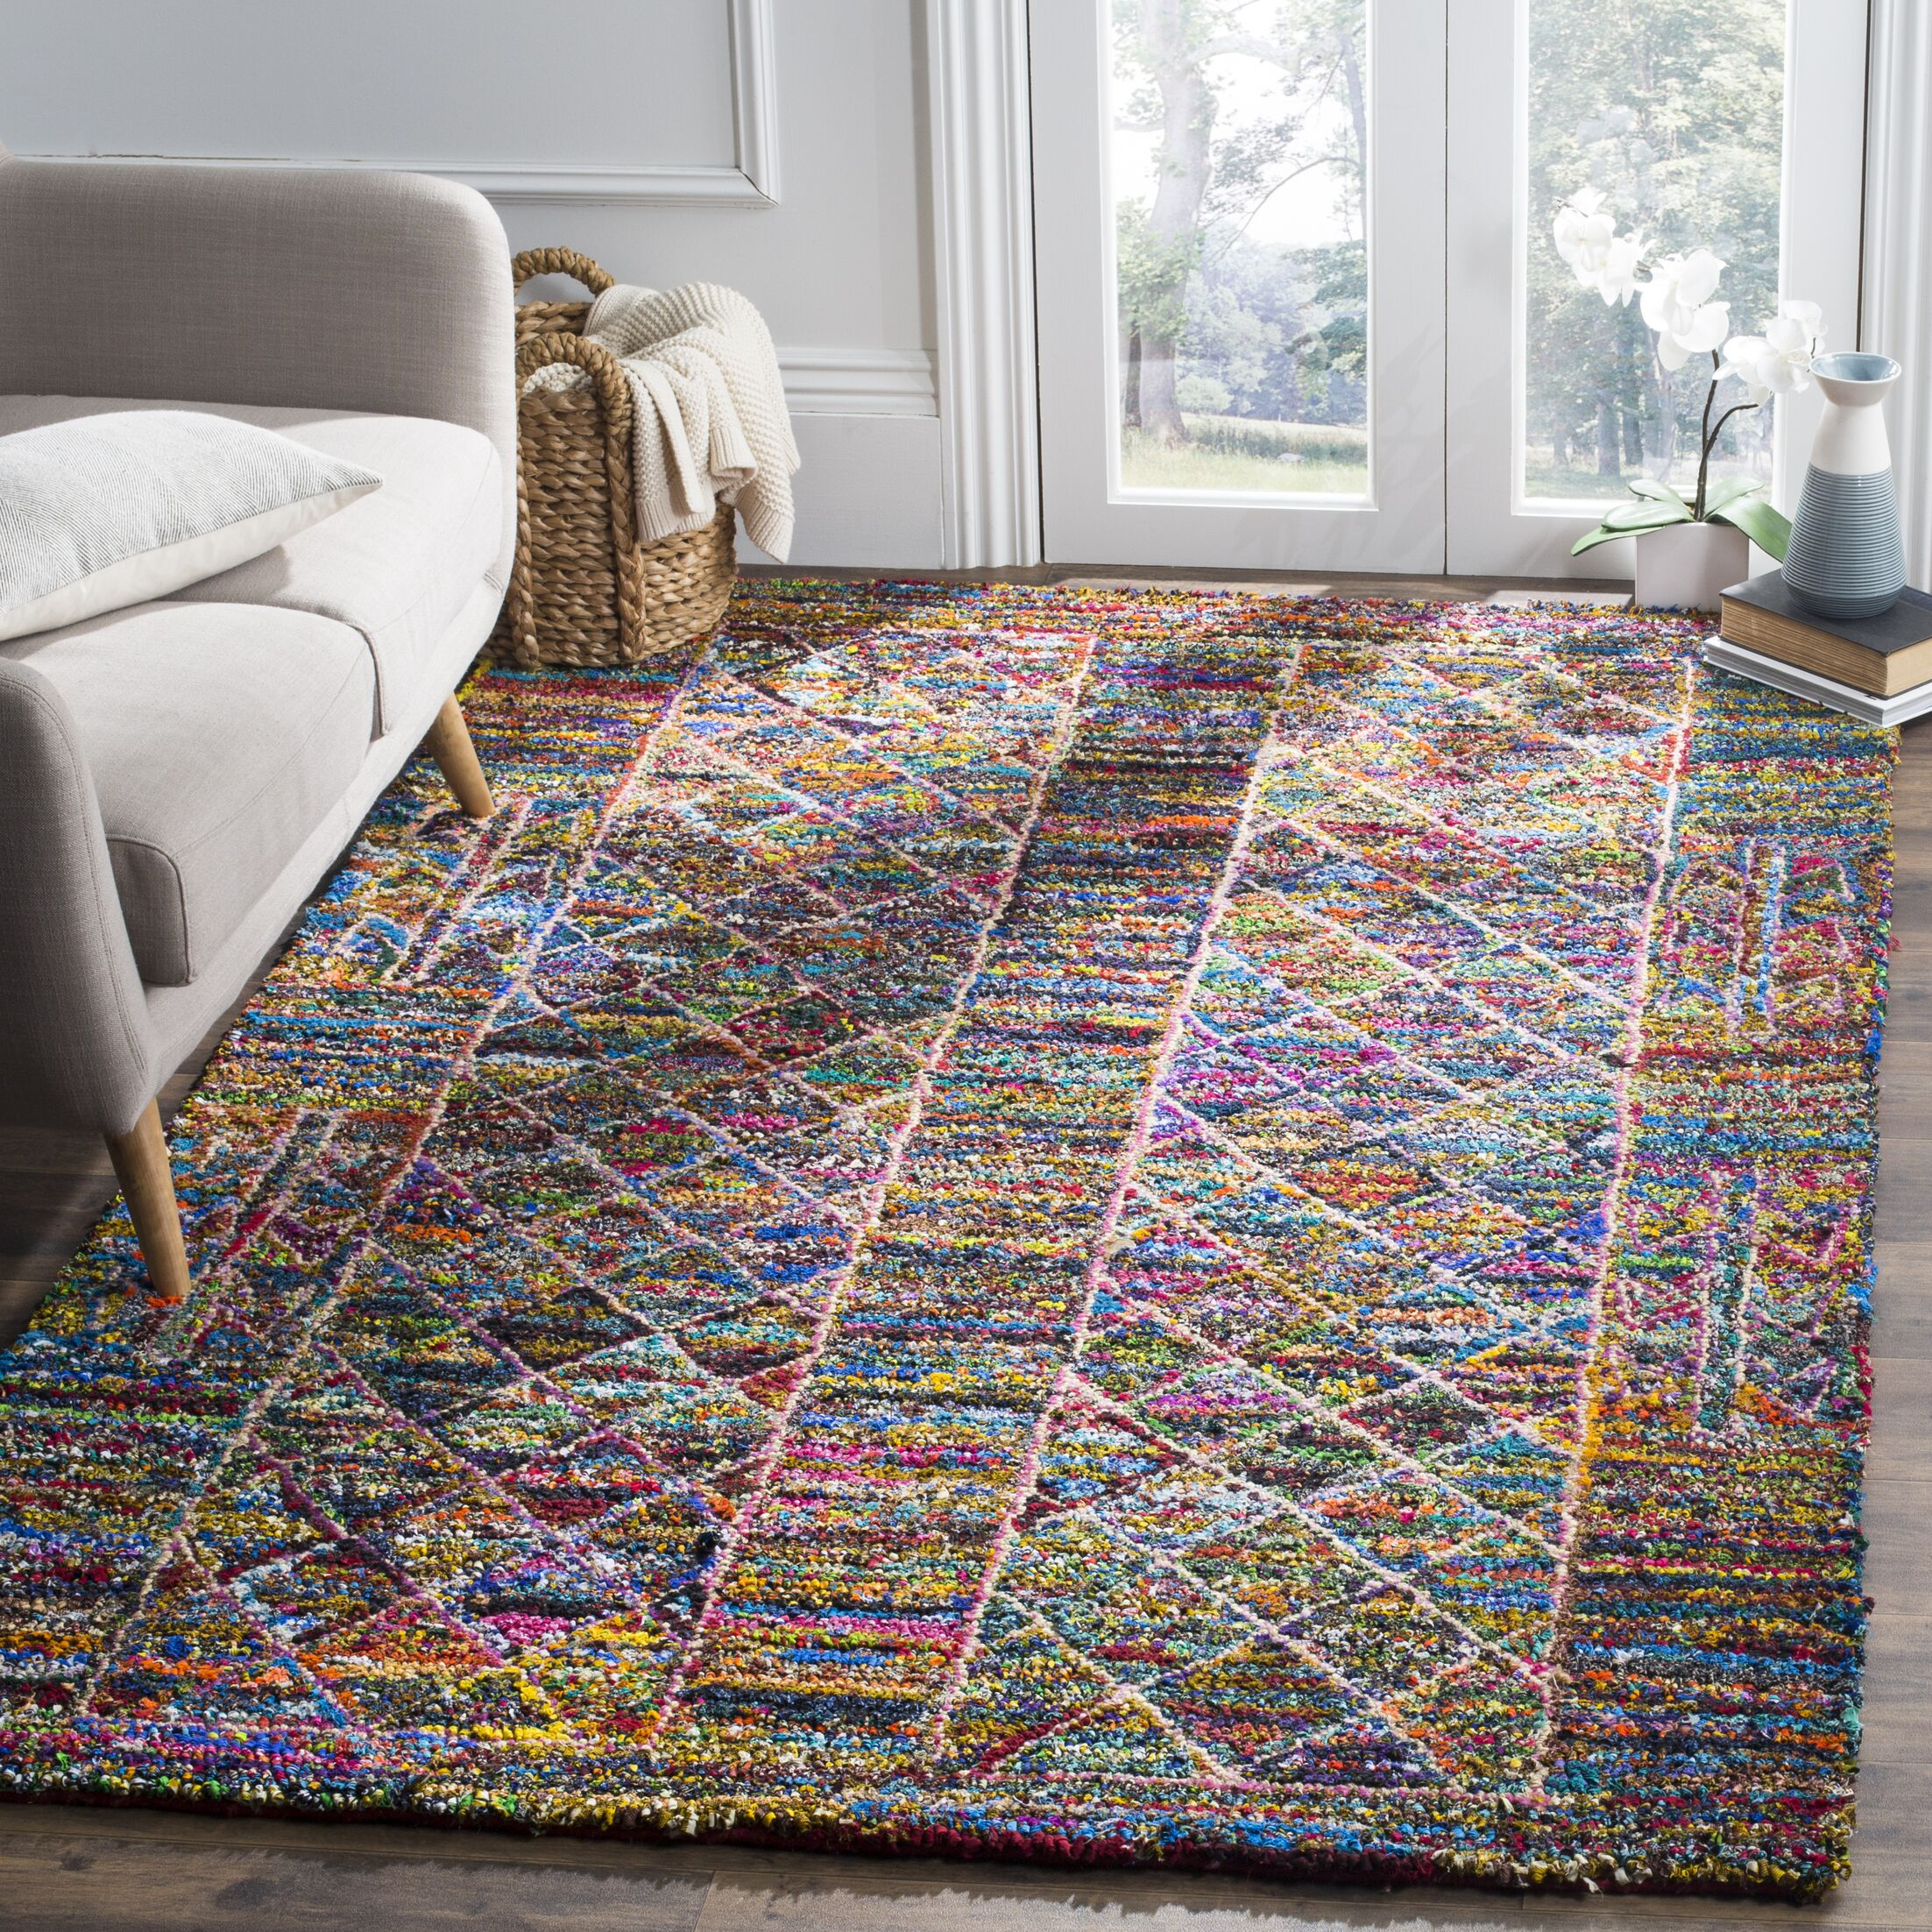 Mueller Hand Tufted Cotton Blue/Pink/Yellow Geometric Area Rug Rug Size: Rectangle 5' x 8'